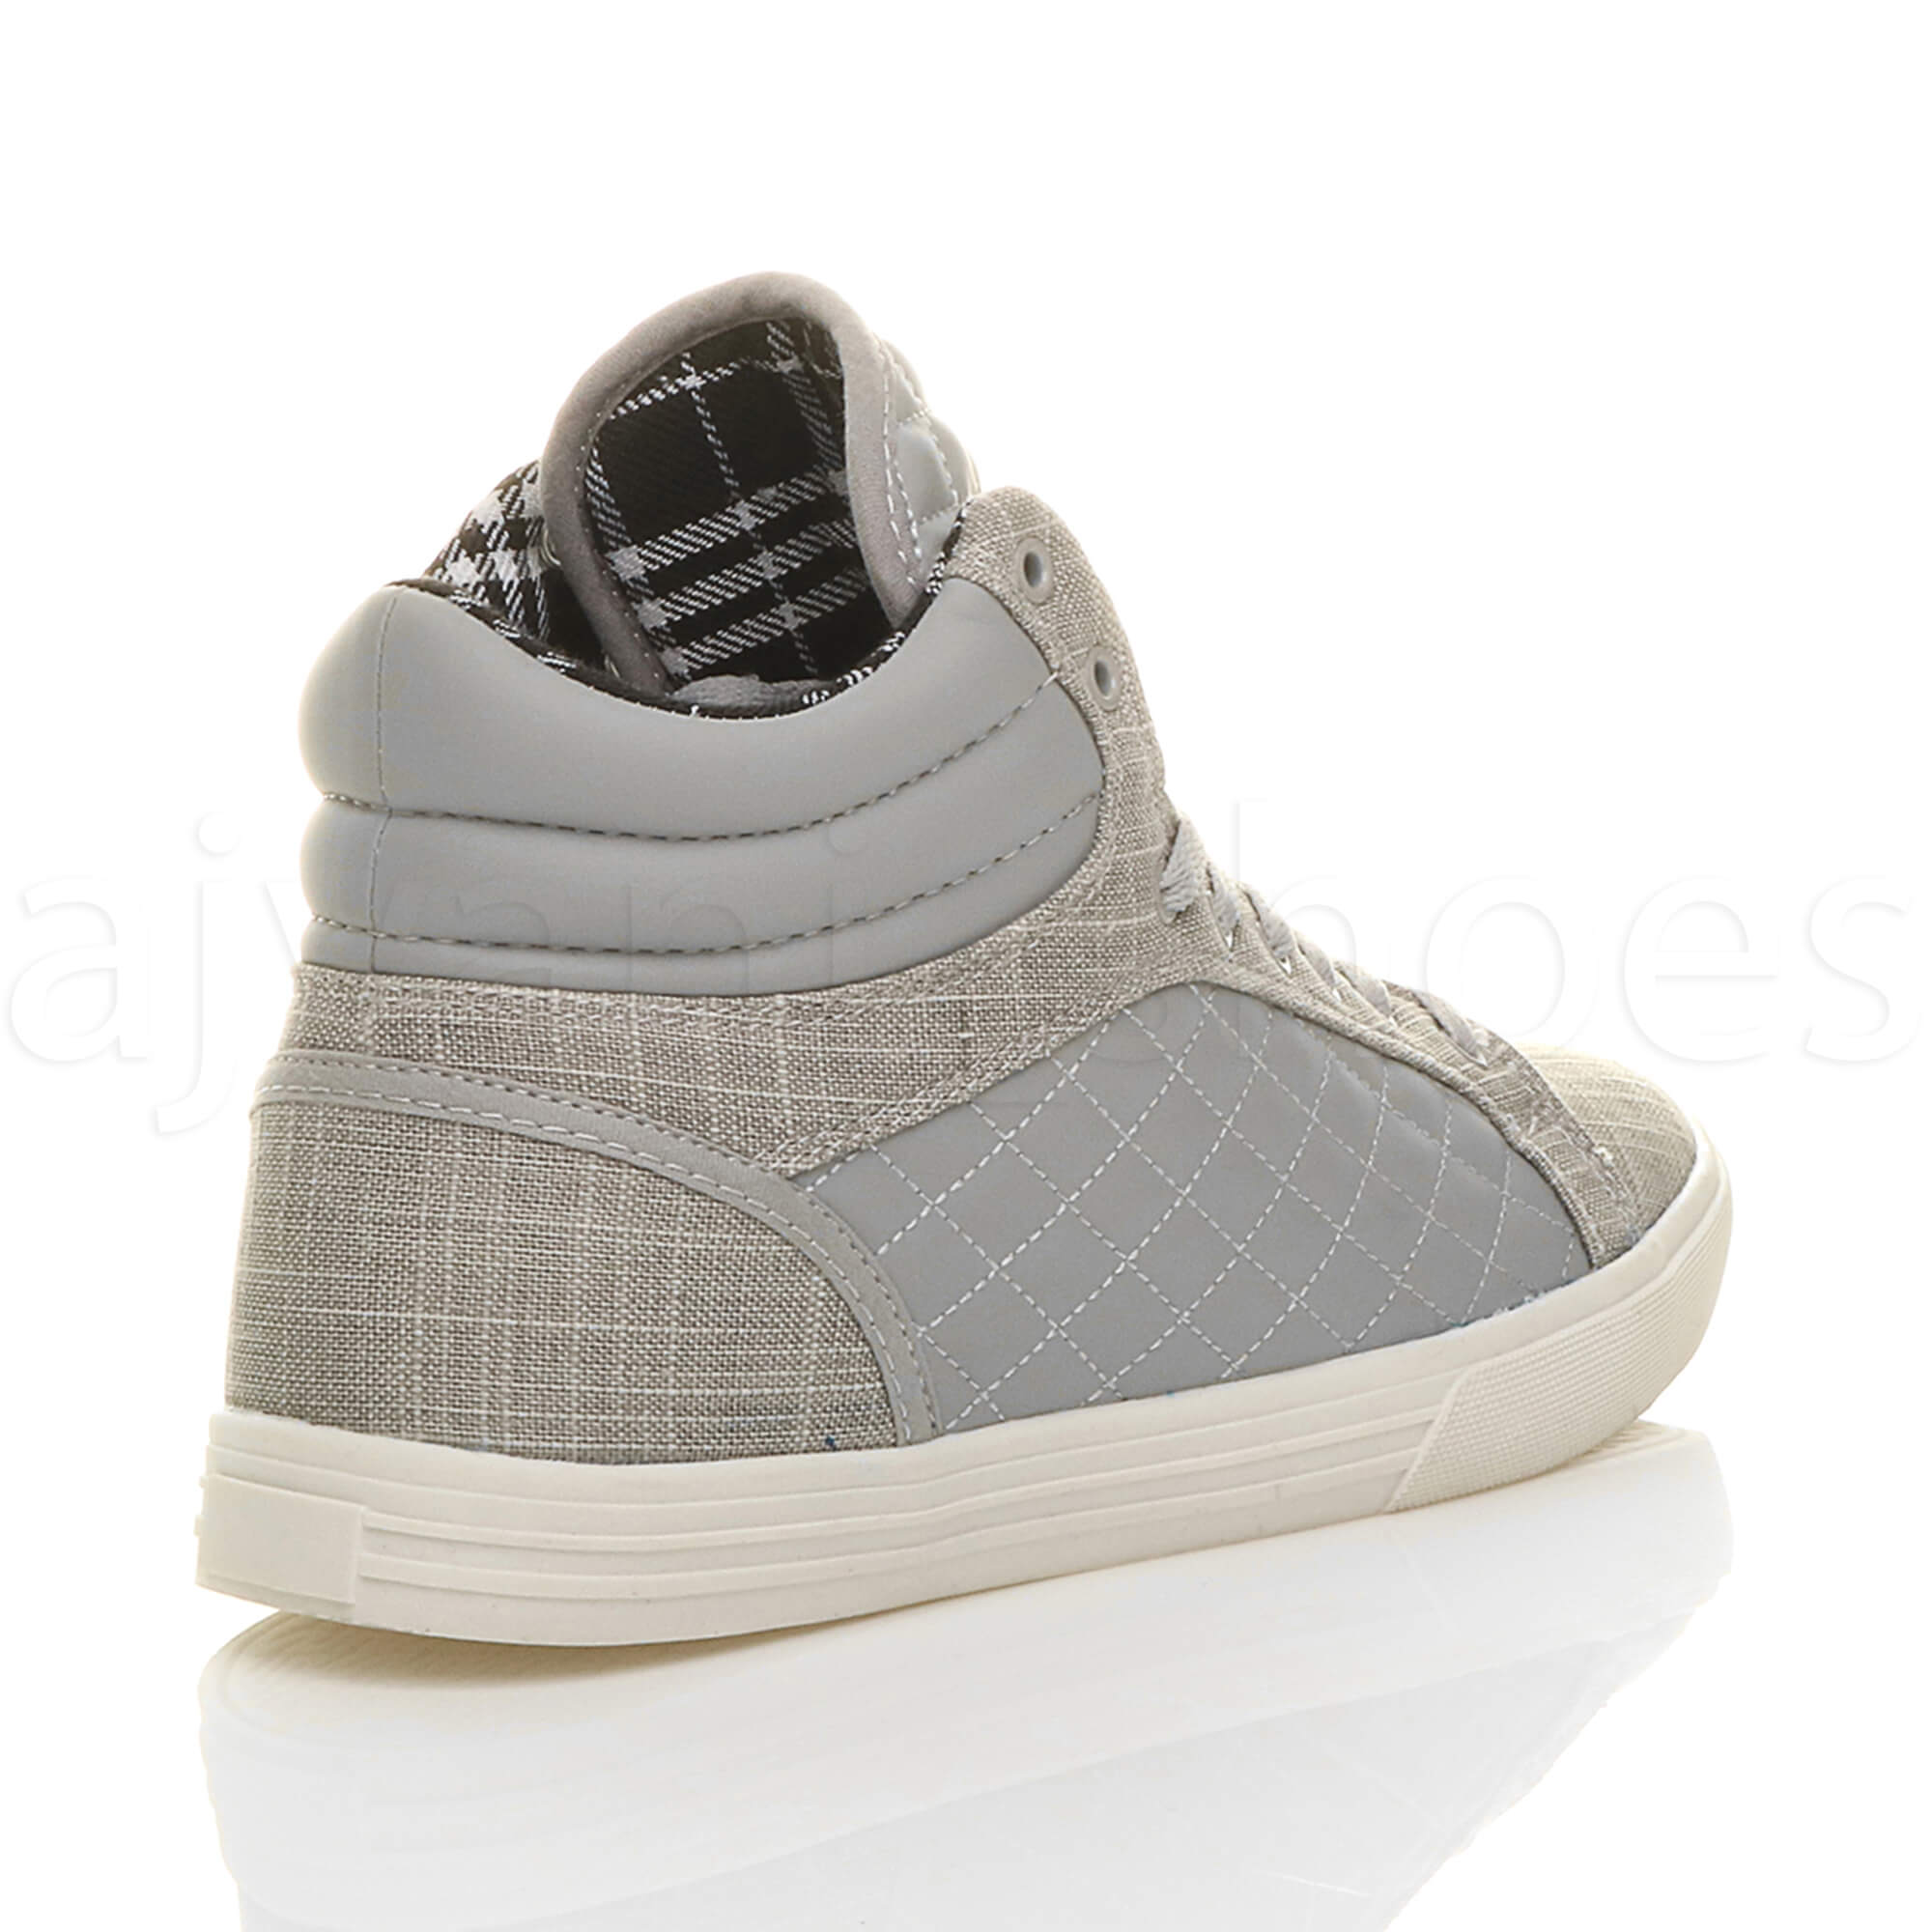 MENS-QUILTED-LACE-UP-FLAT-CASUAL-HI-HIGH-TOP-TRAINERS-SHOES-ANKLE-BOOTS-SIZE thumbnail 19